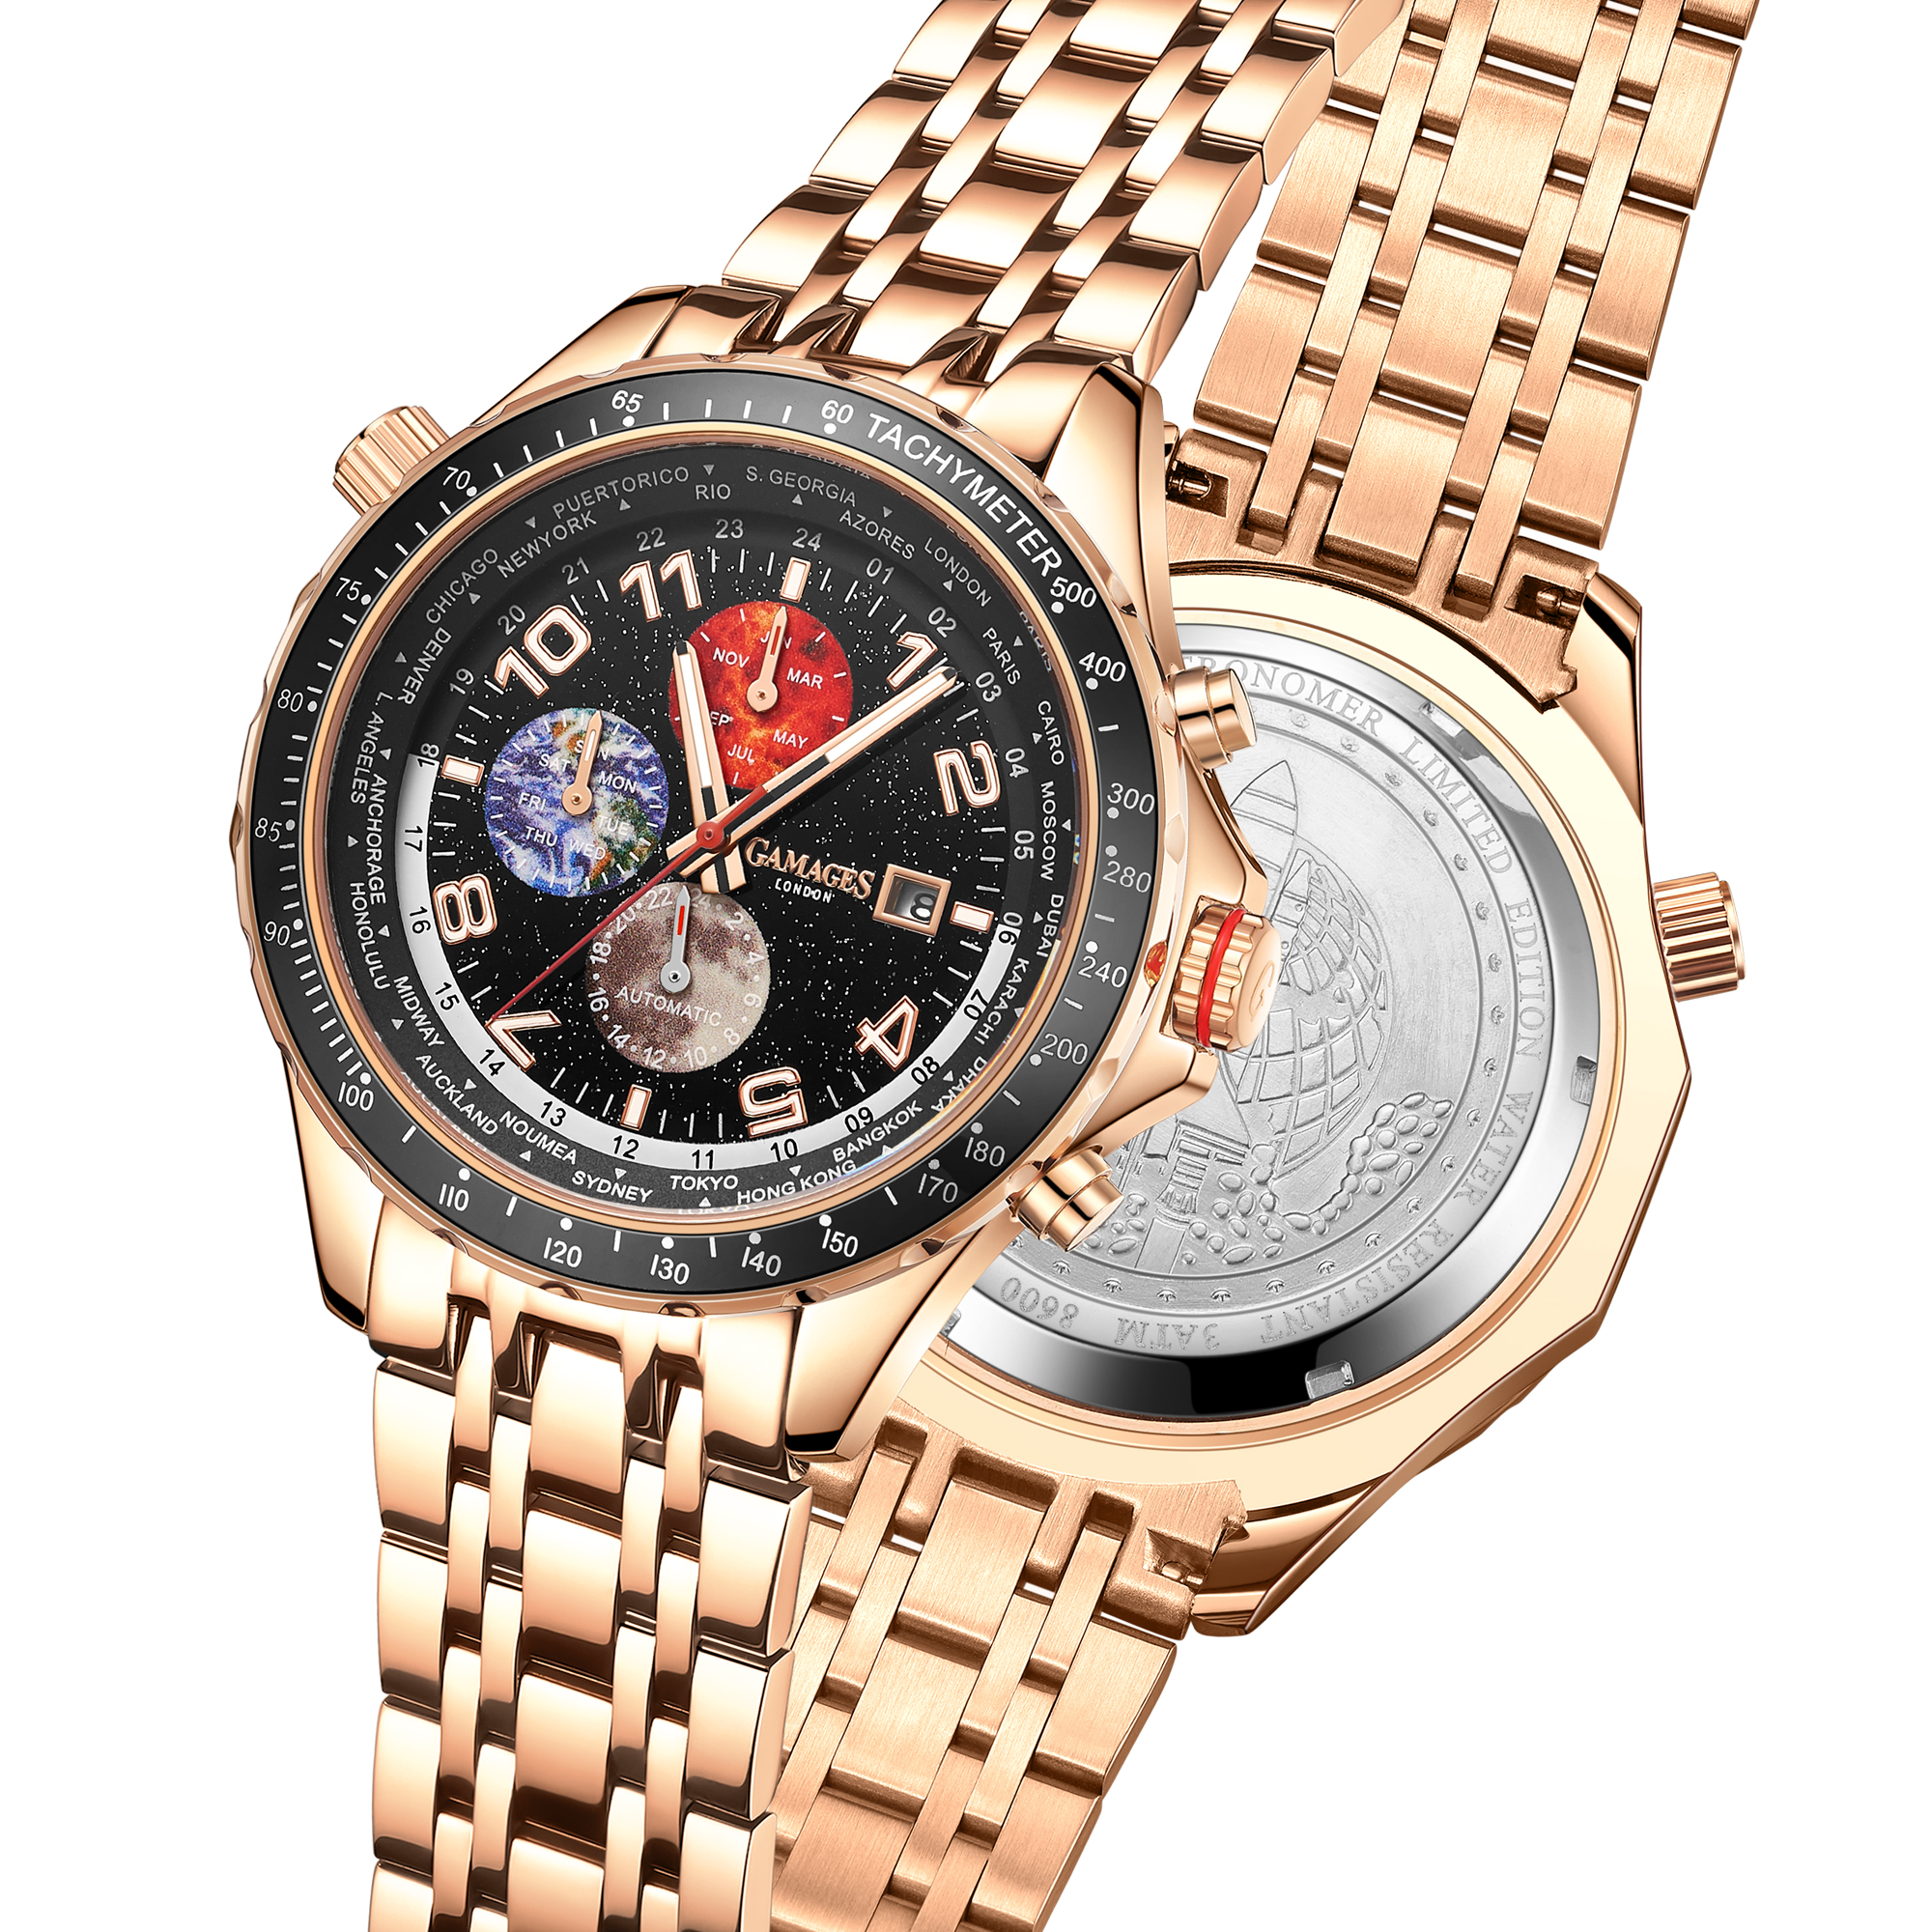 Limited Edition Hand Assembled GAMAGES Astronomer Automatic Rose – 5 Year Warranty & Free Delivery - Image 4 of 4